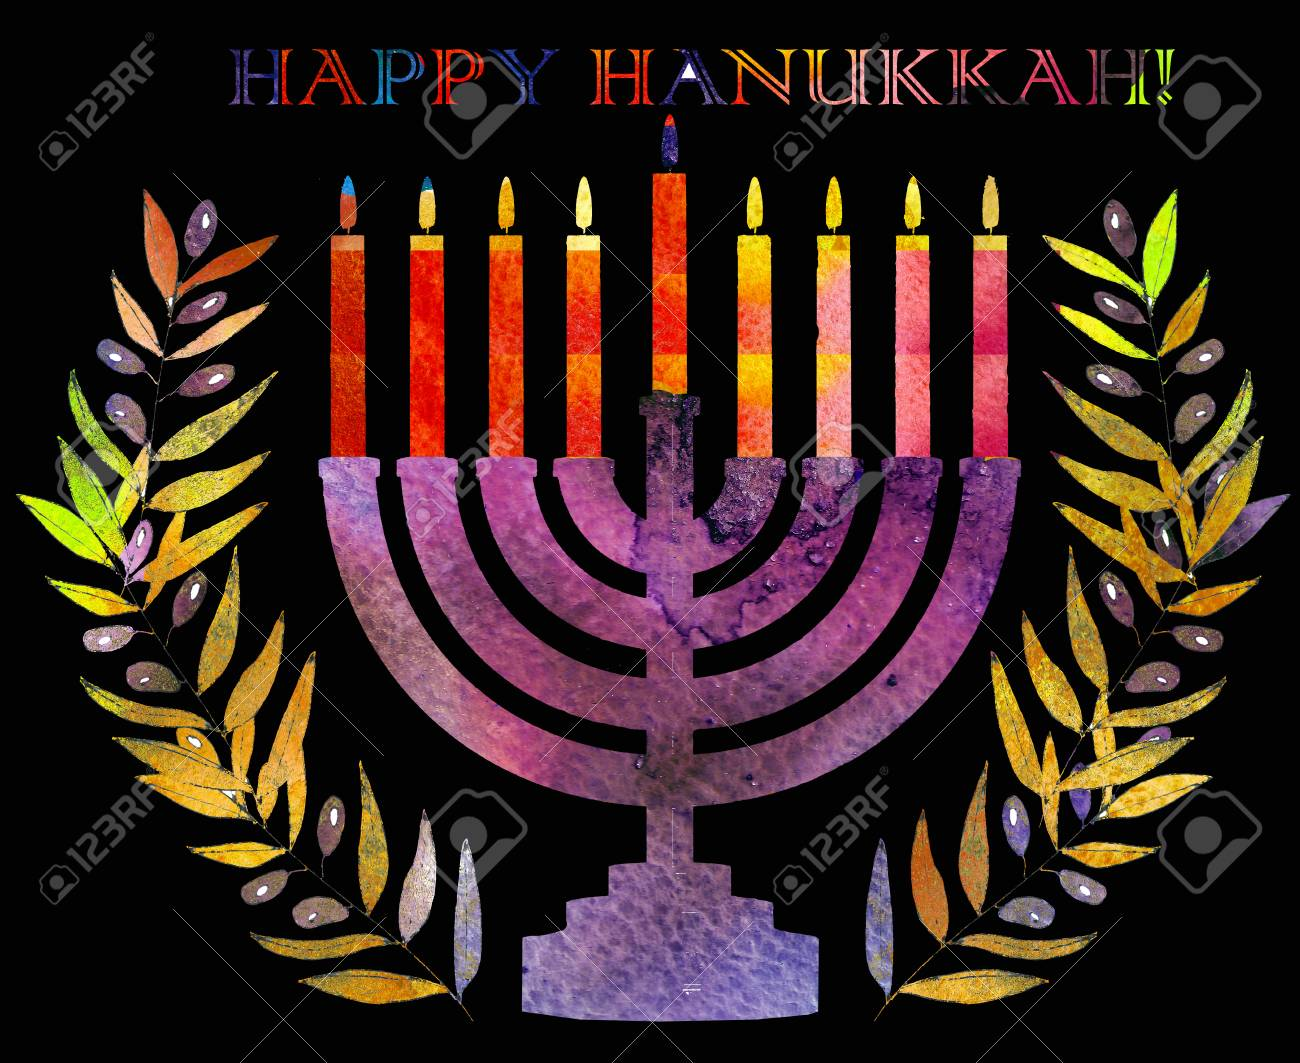 Jewish traditional holiday hannukah greeting card with menorah jewish traditional holiday hannukah greeting card with menorah and text happy hanukkah watercolor background m4hsunfo